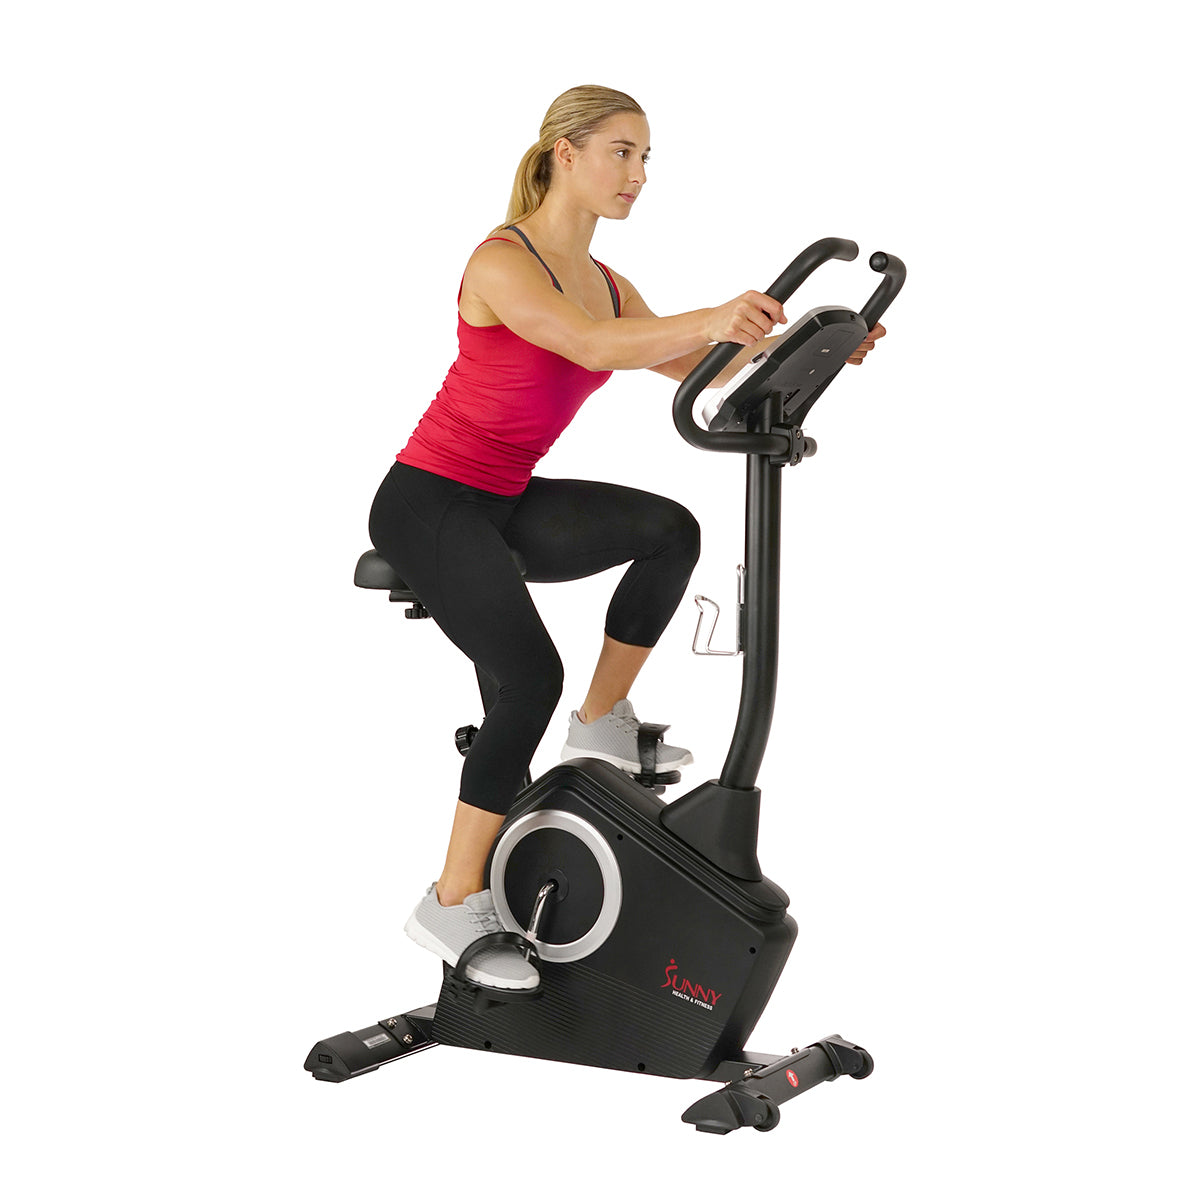 sunny-health-fitness-bikes-magnetic-upright-exercise-bike-programmable-monitor-pulse-rate-SF-B2883-fittings